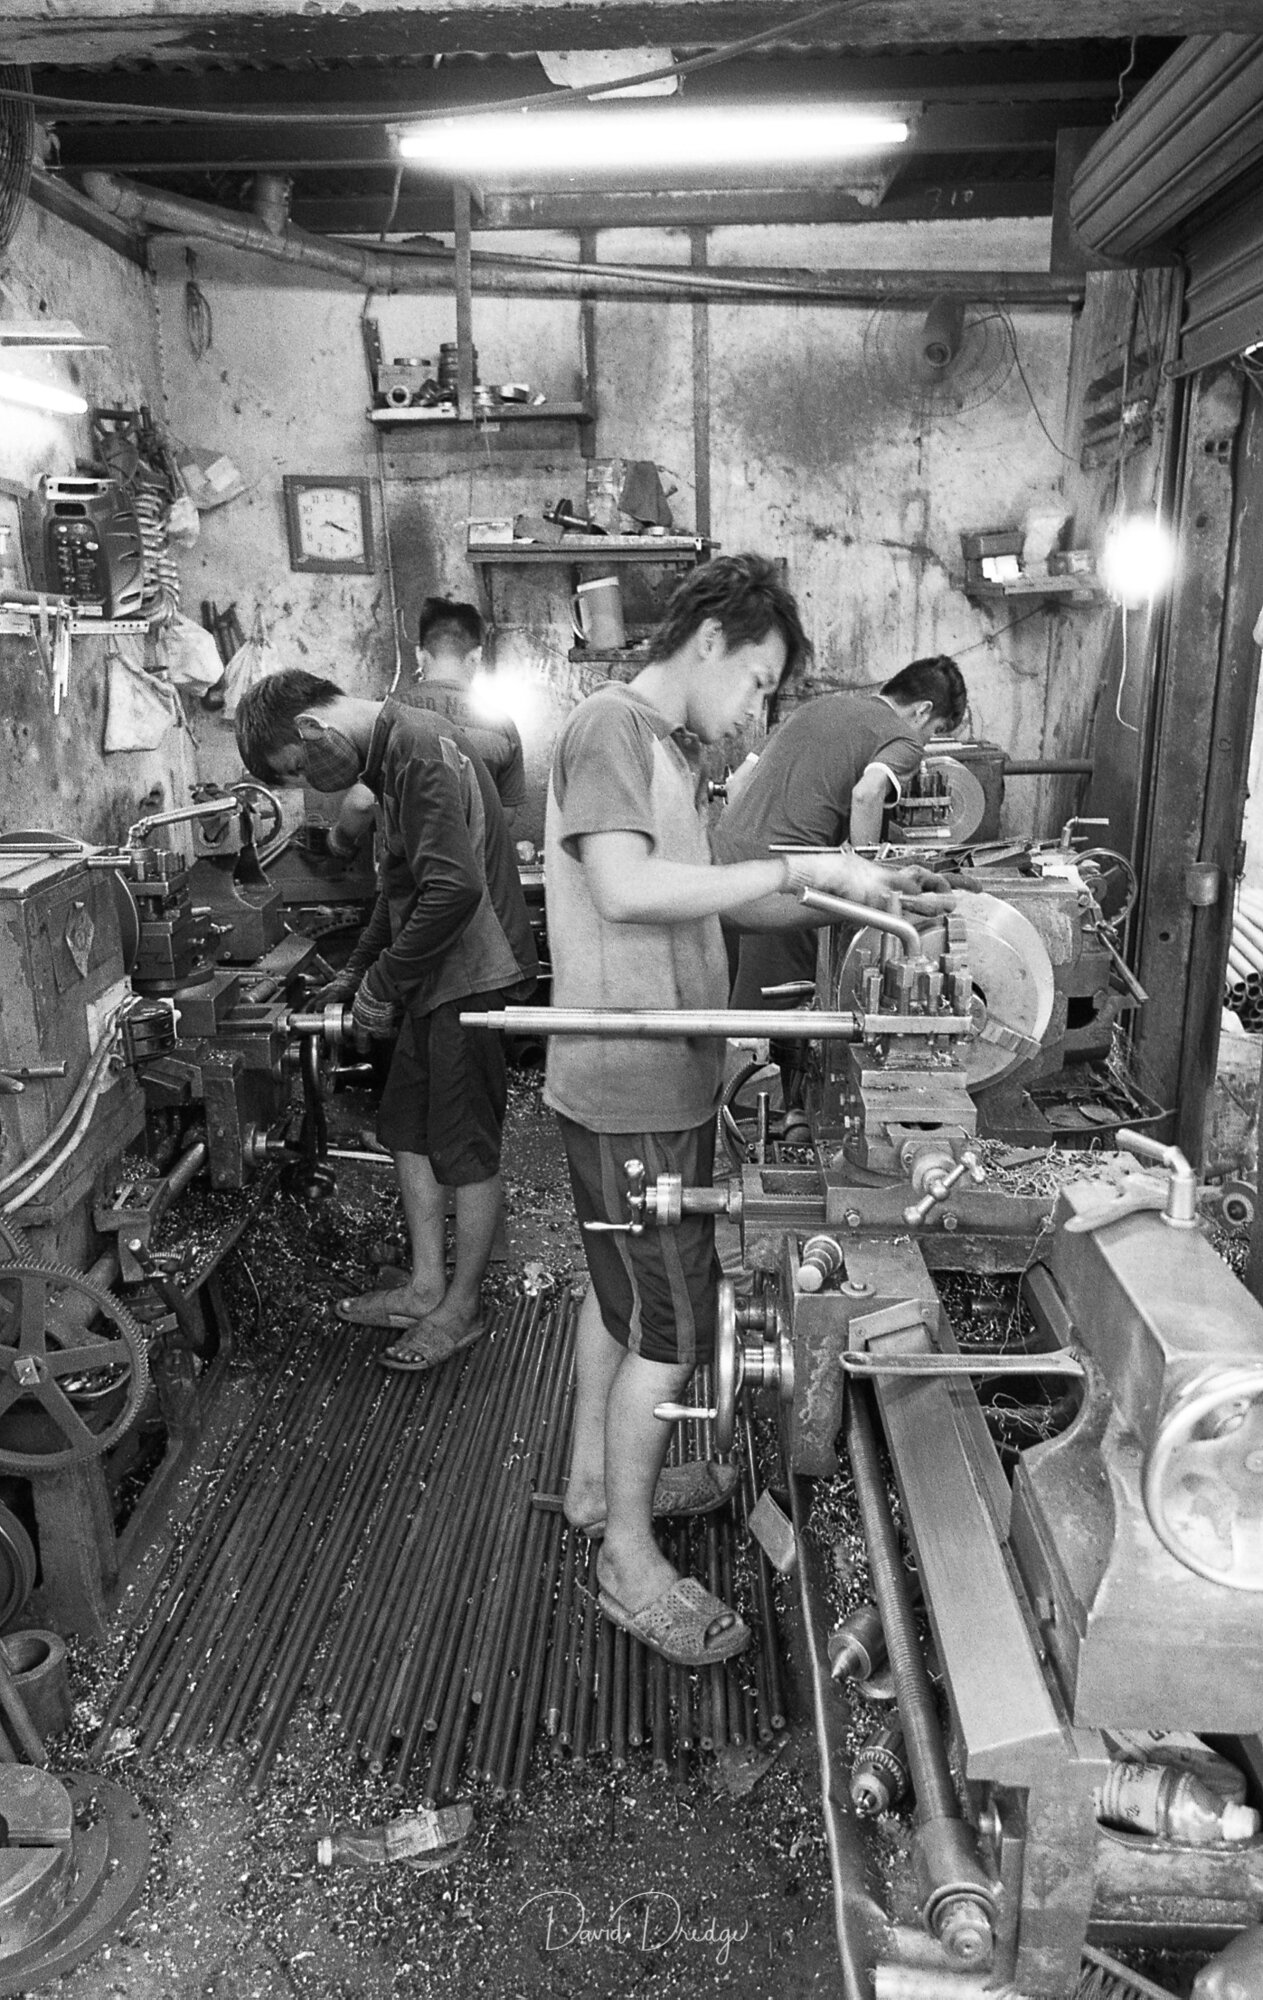 Young workmen BW street photography